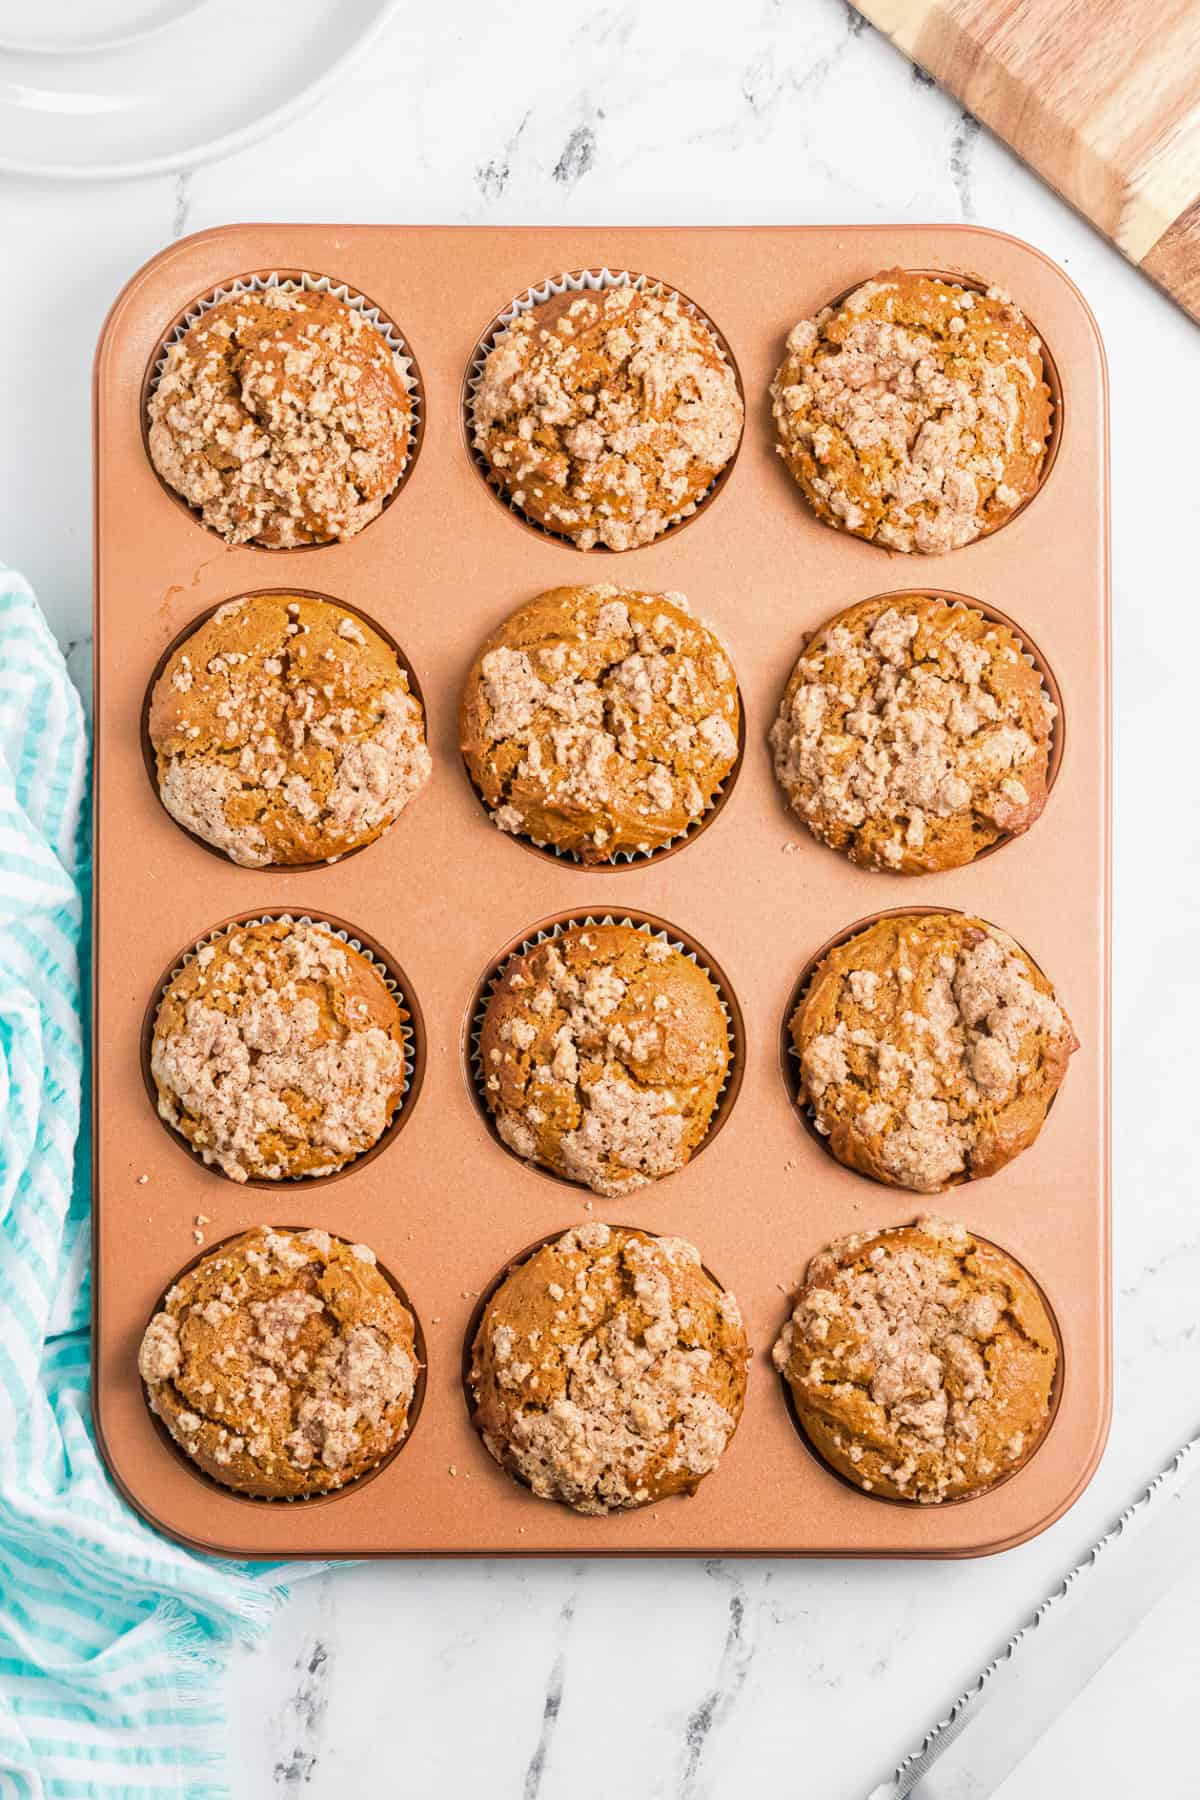 a muffin pan with 12 pumpkin cream cheese muffins topped with cinnamon streusel.